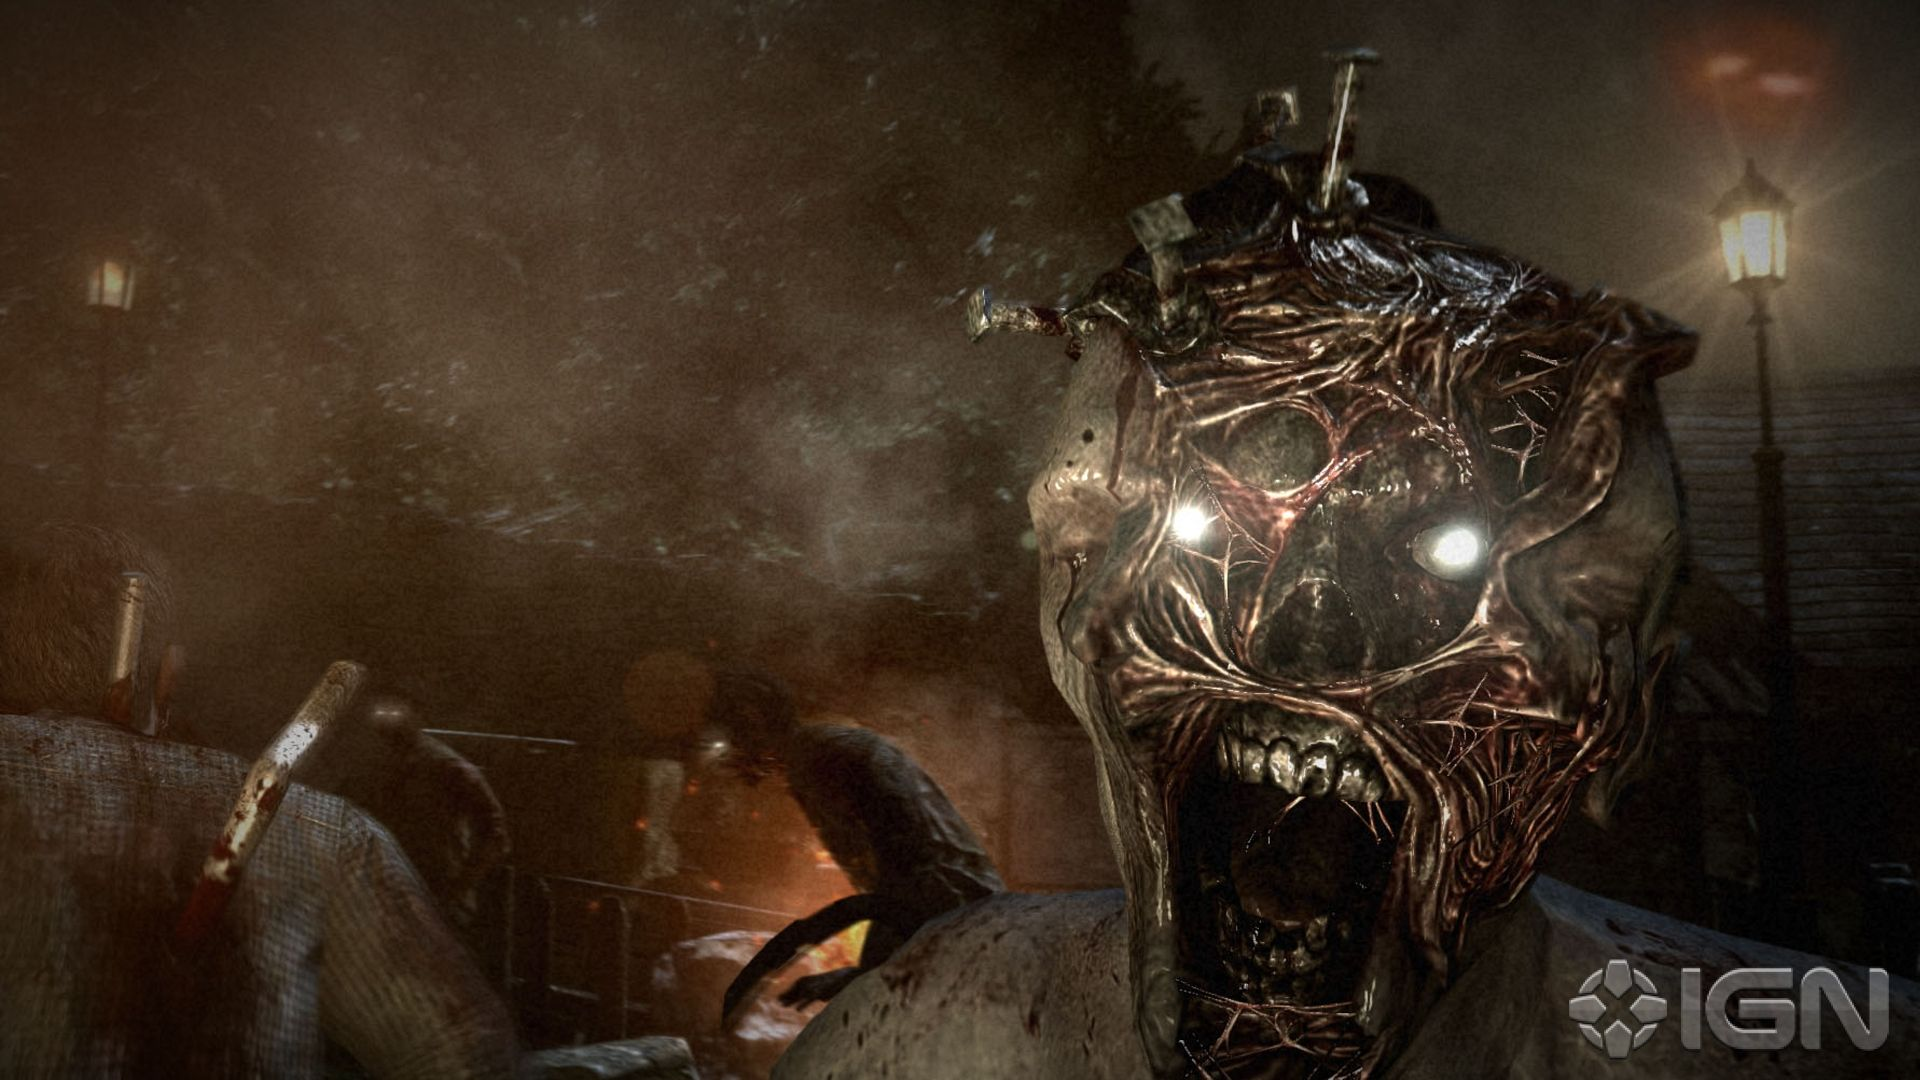 1366374998_1366374093-the-evil-within-2.jpeg